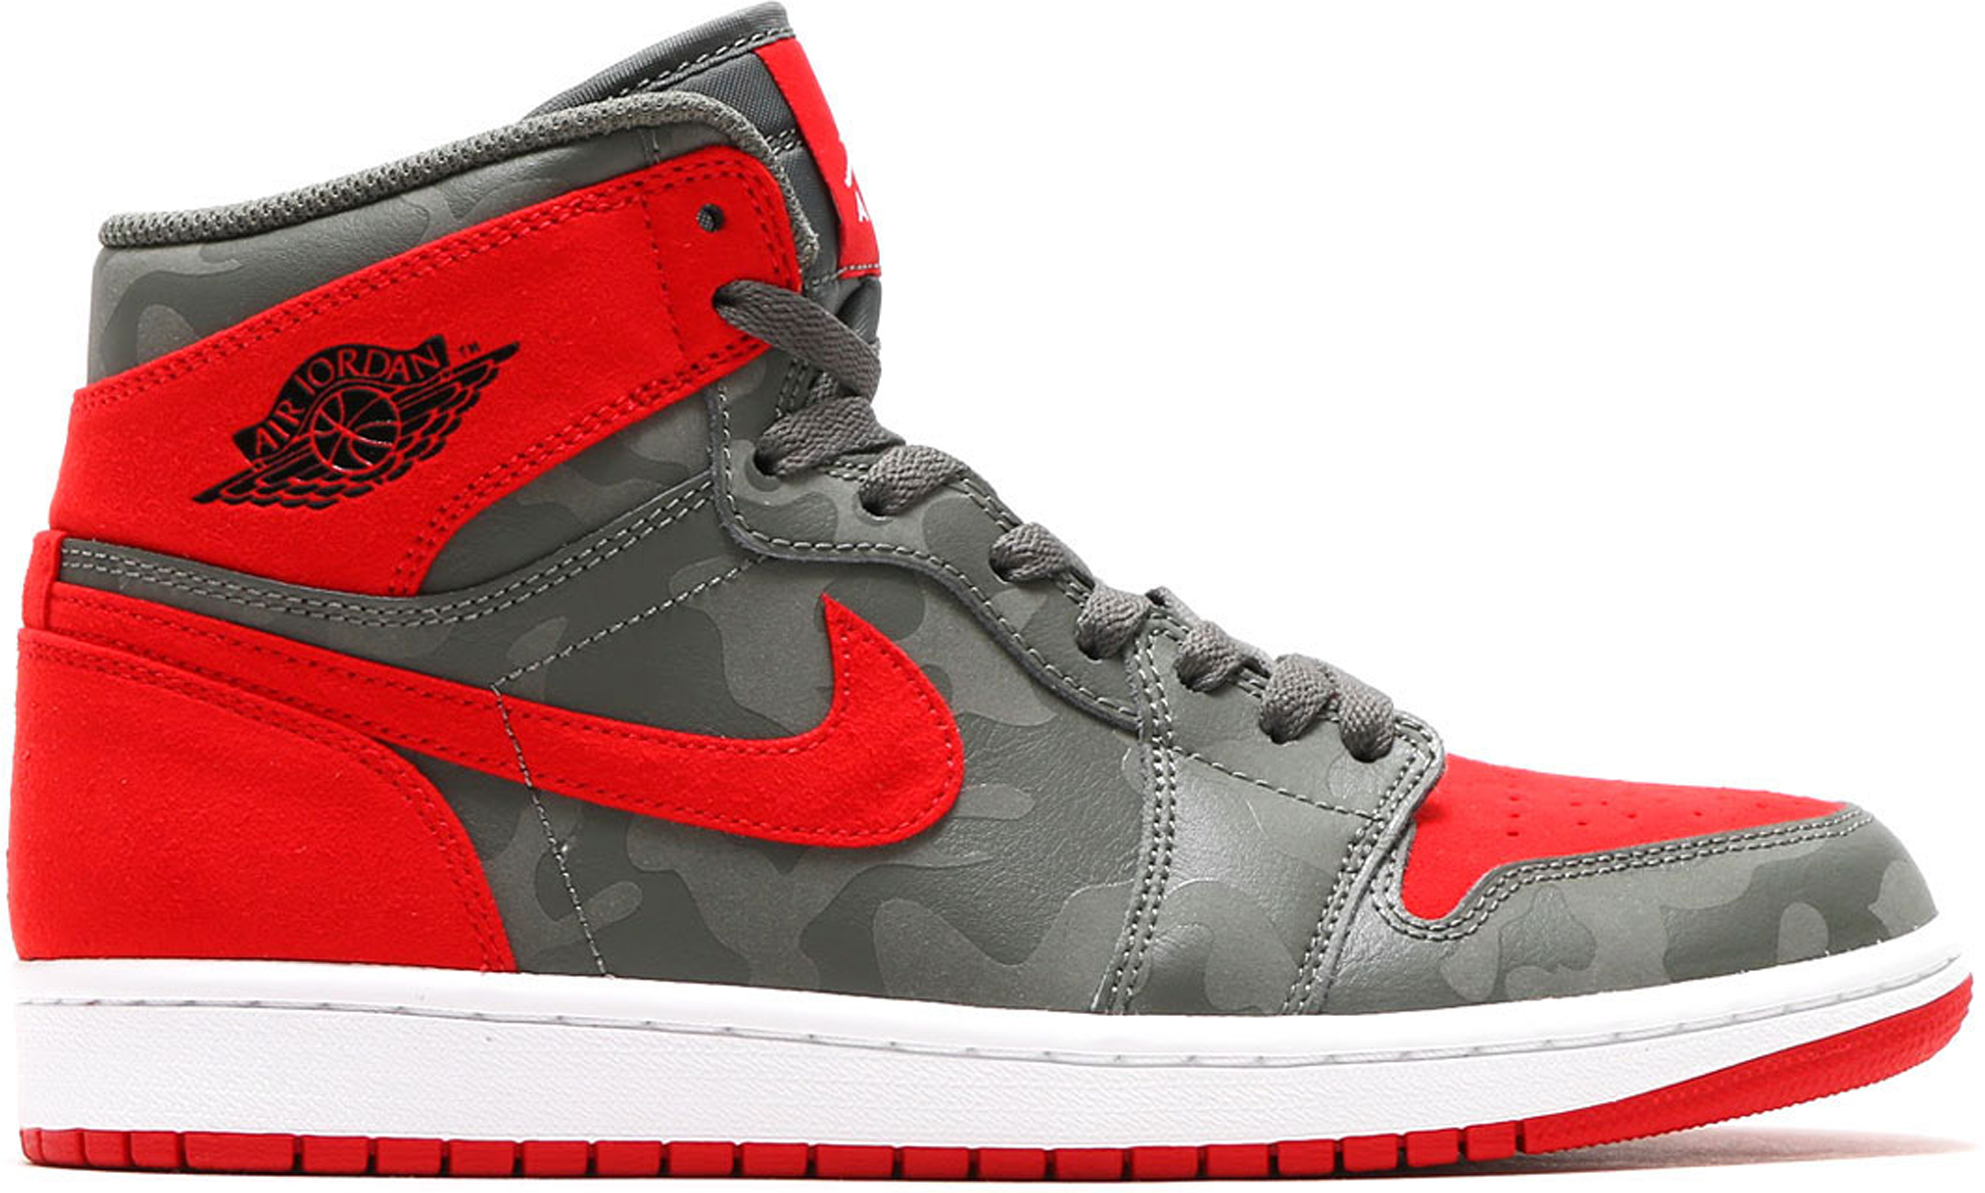 Jordan 1 Retro High Camo 3M Bred